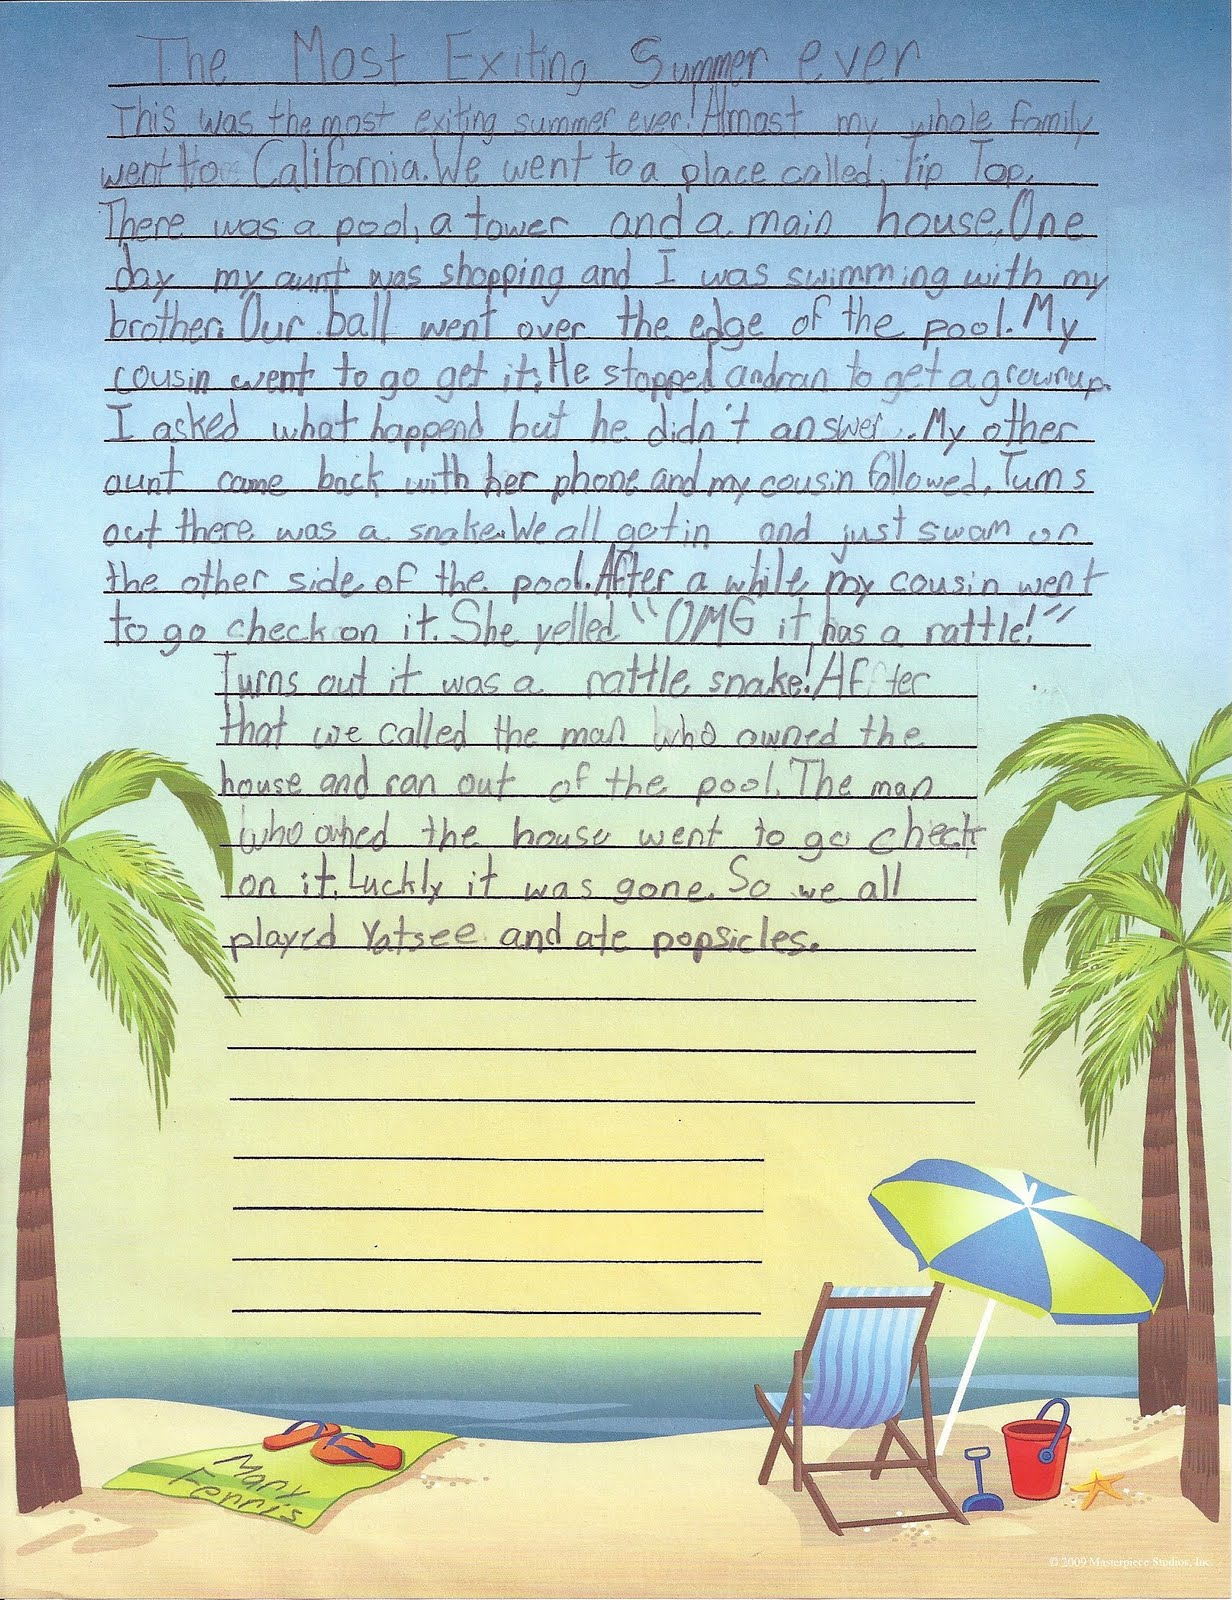 simple essay on how i spent my summer vacation On my last summer vacation i got to go on a cruise it was so much fun and i wish i could go again.